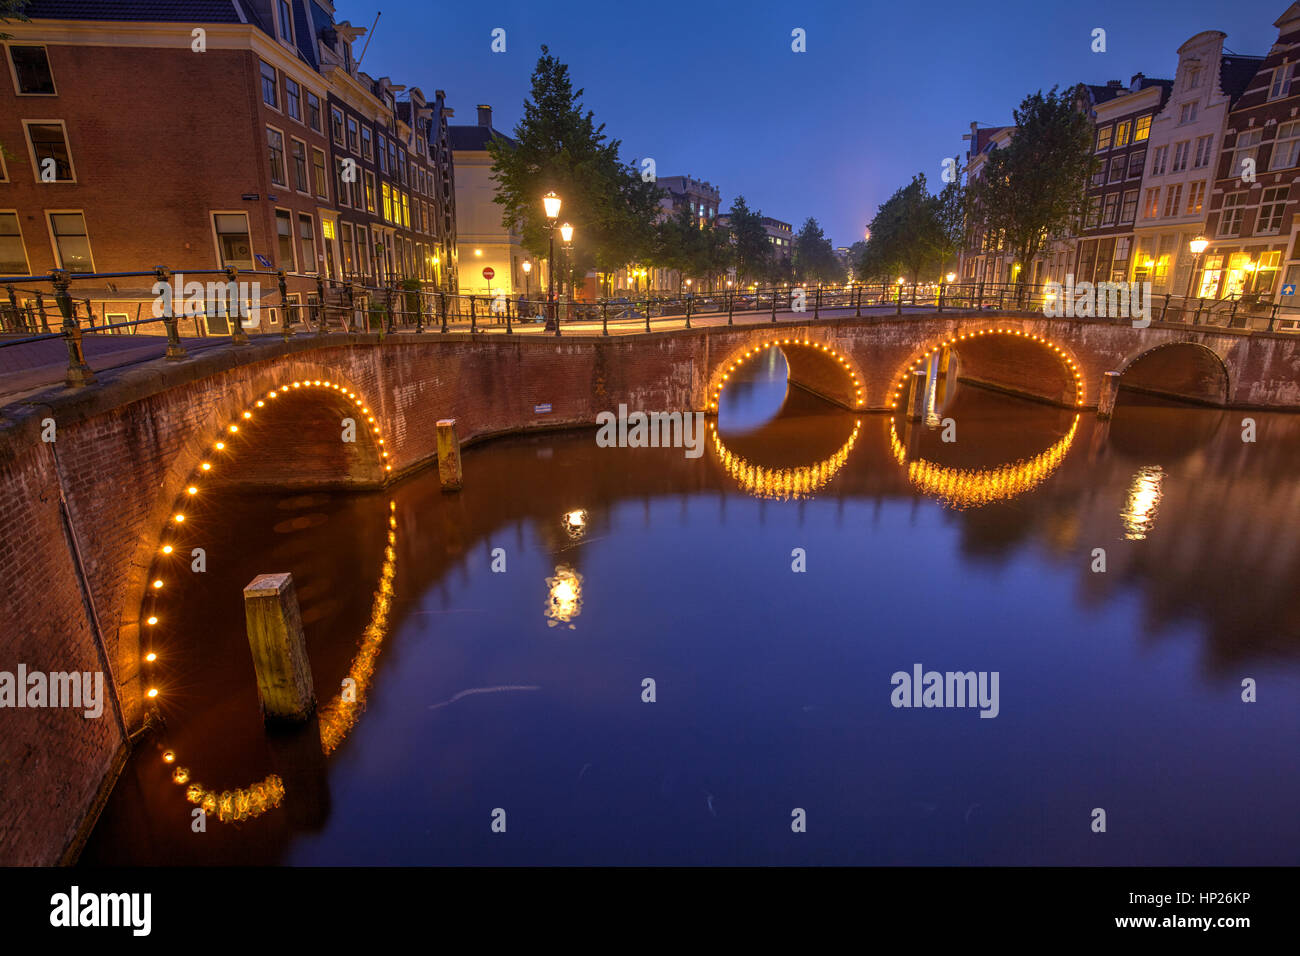 Traditional canals in Amsterdam, Netherlands Stock Photo